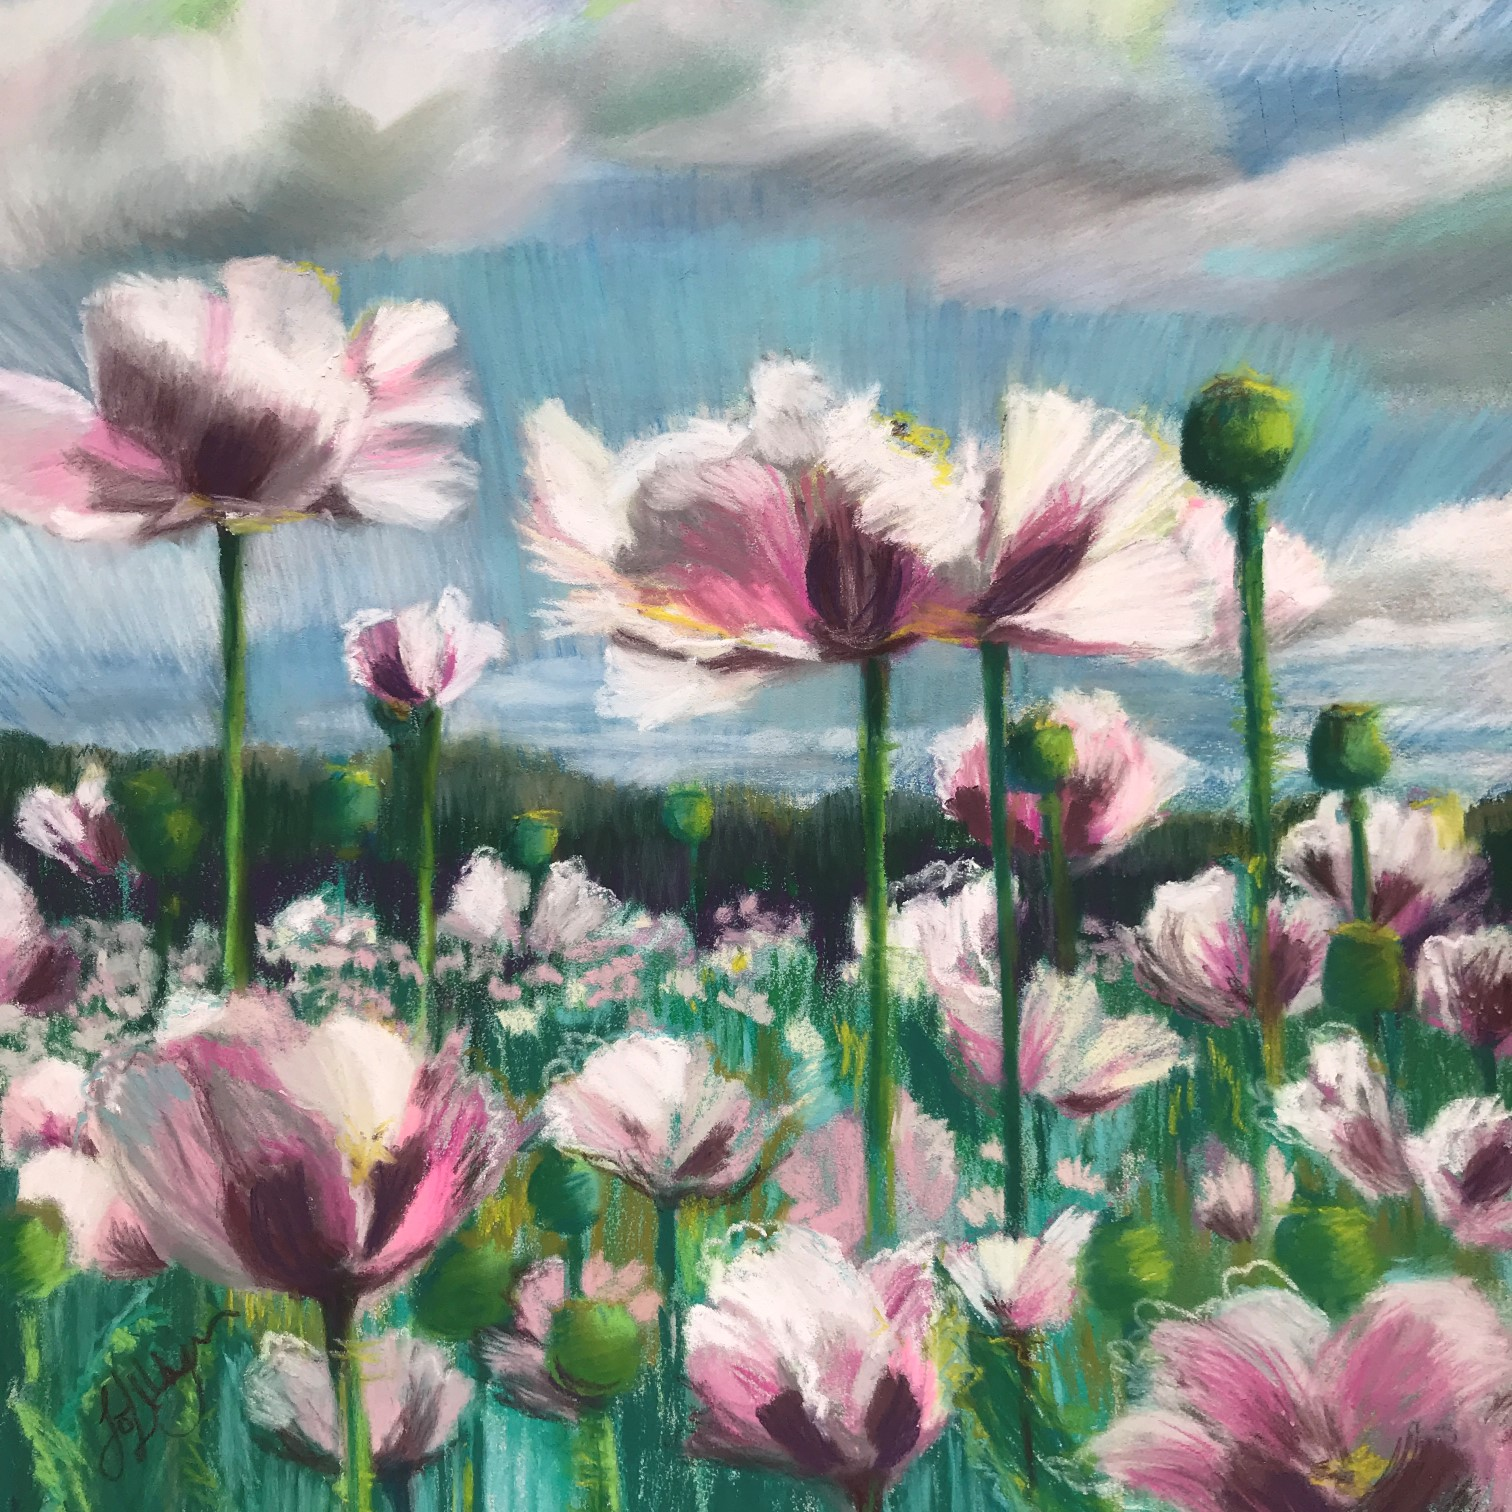 poppies opium woodcote south stoke oxfordshire poppy flowers fields lilac pastel